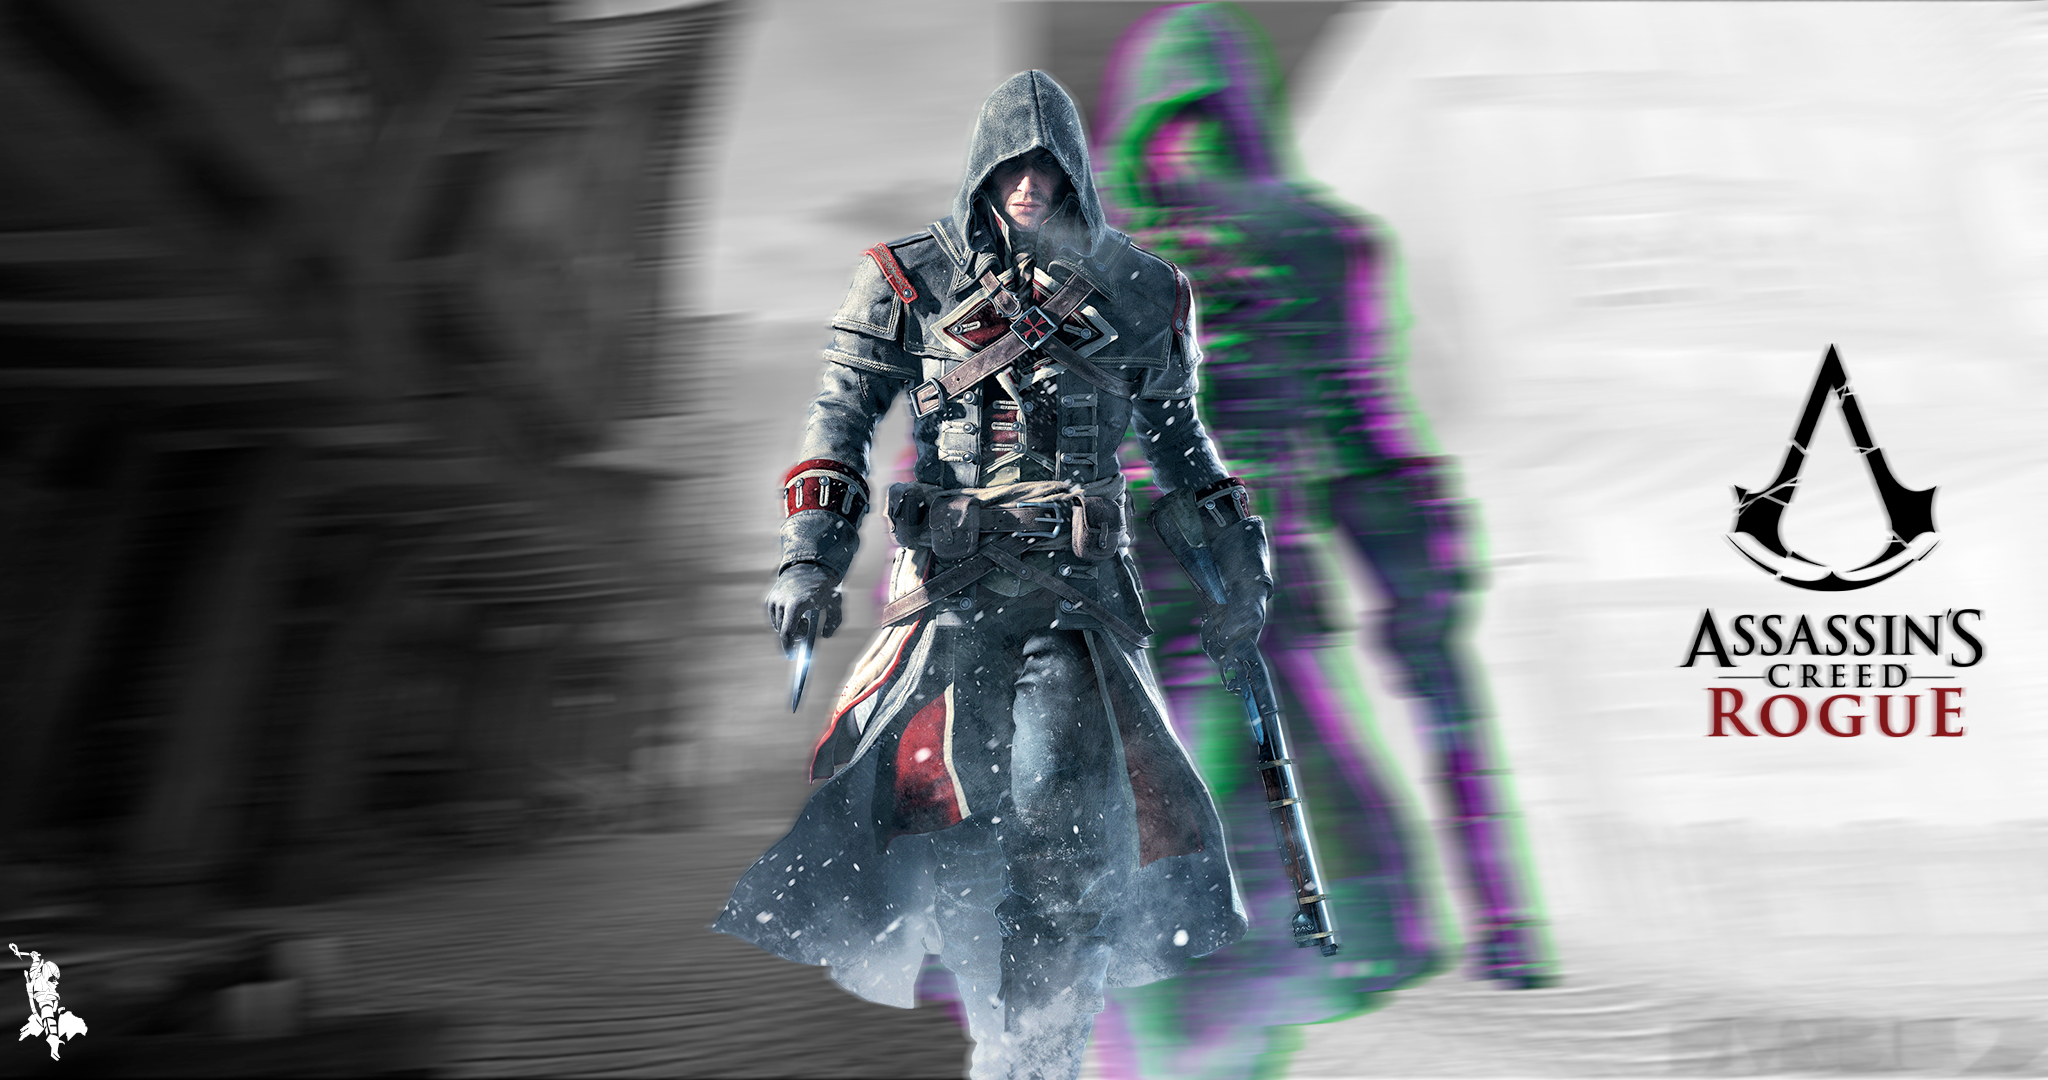 Steam Community Guide Assassin S Creed Rogue Memories Guide